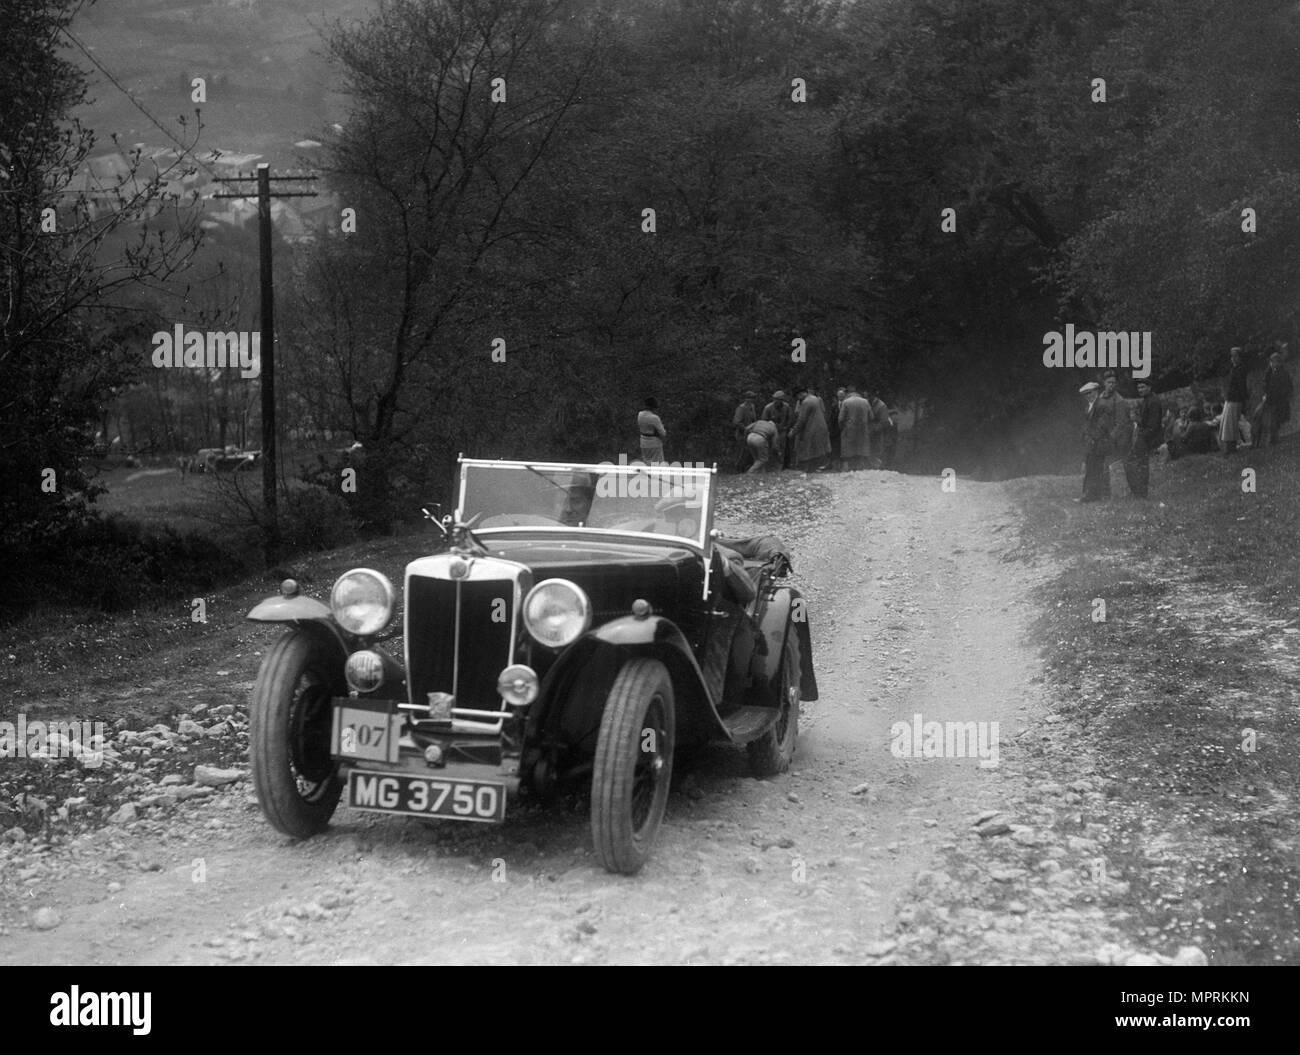 MG Magnette competing in a motoring trial, Nailsworth Ladder, Gloucestershire, 1930s.. Artist: Bill Brunell. - Stock Image